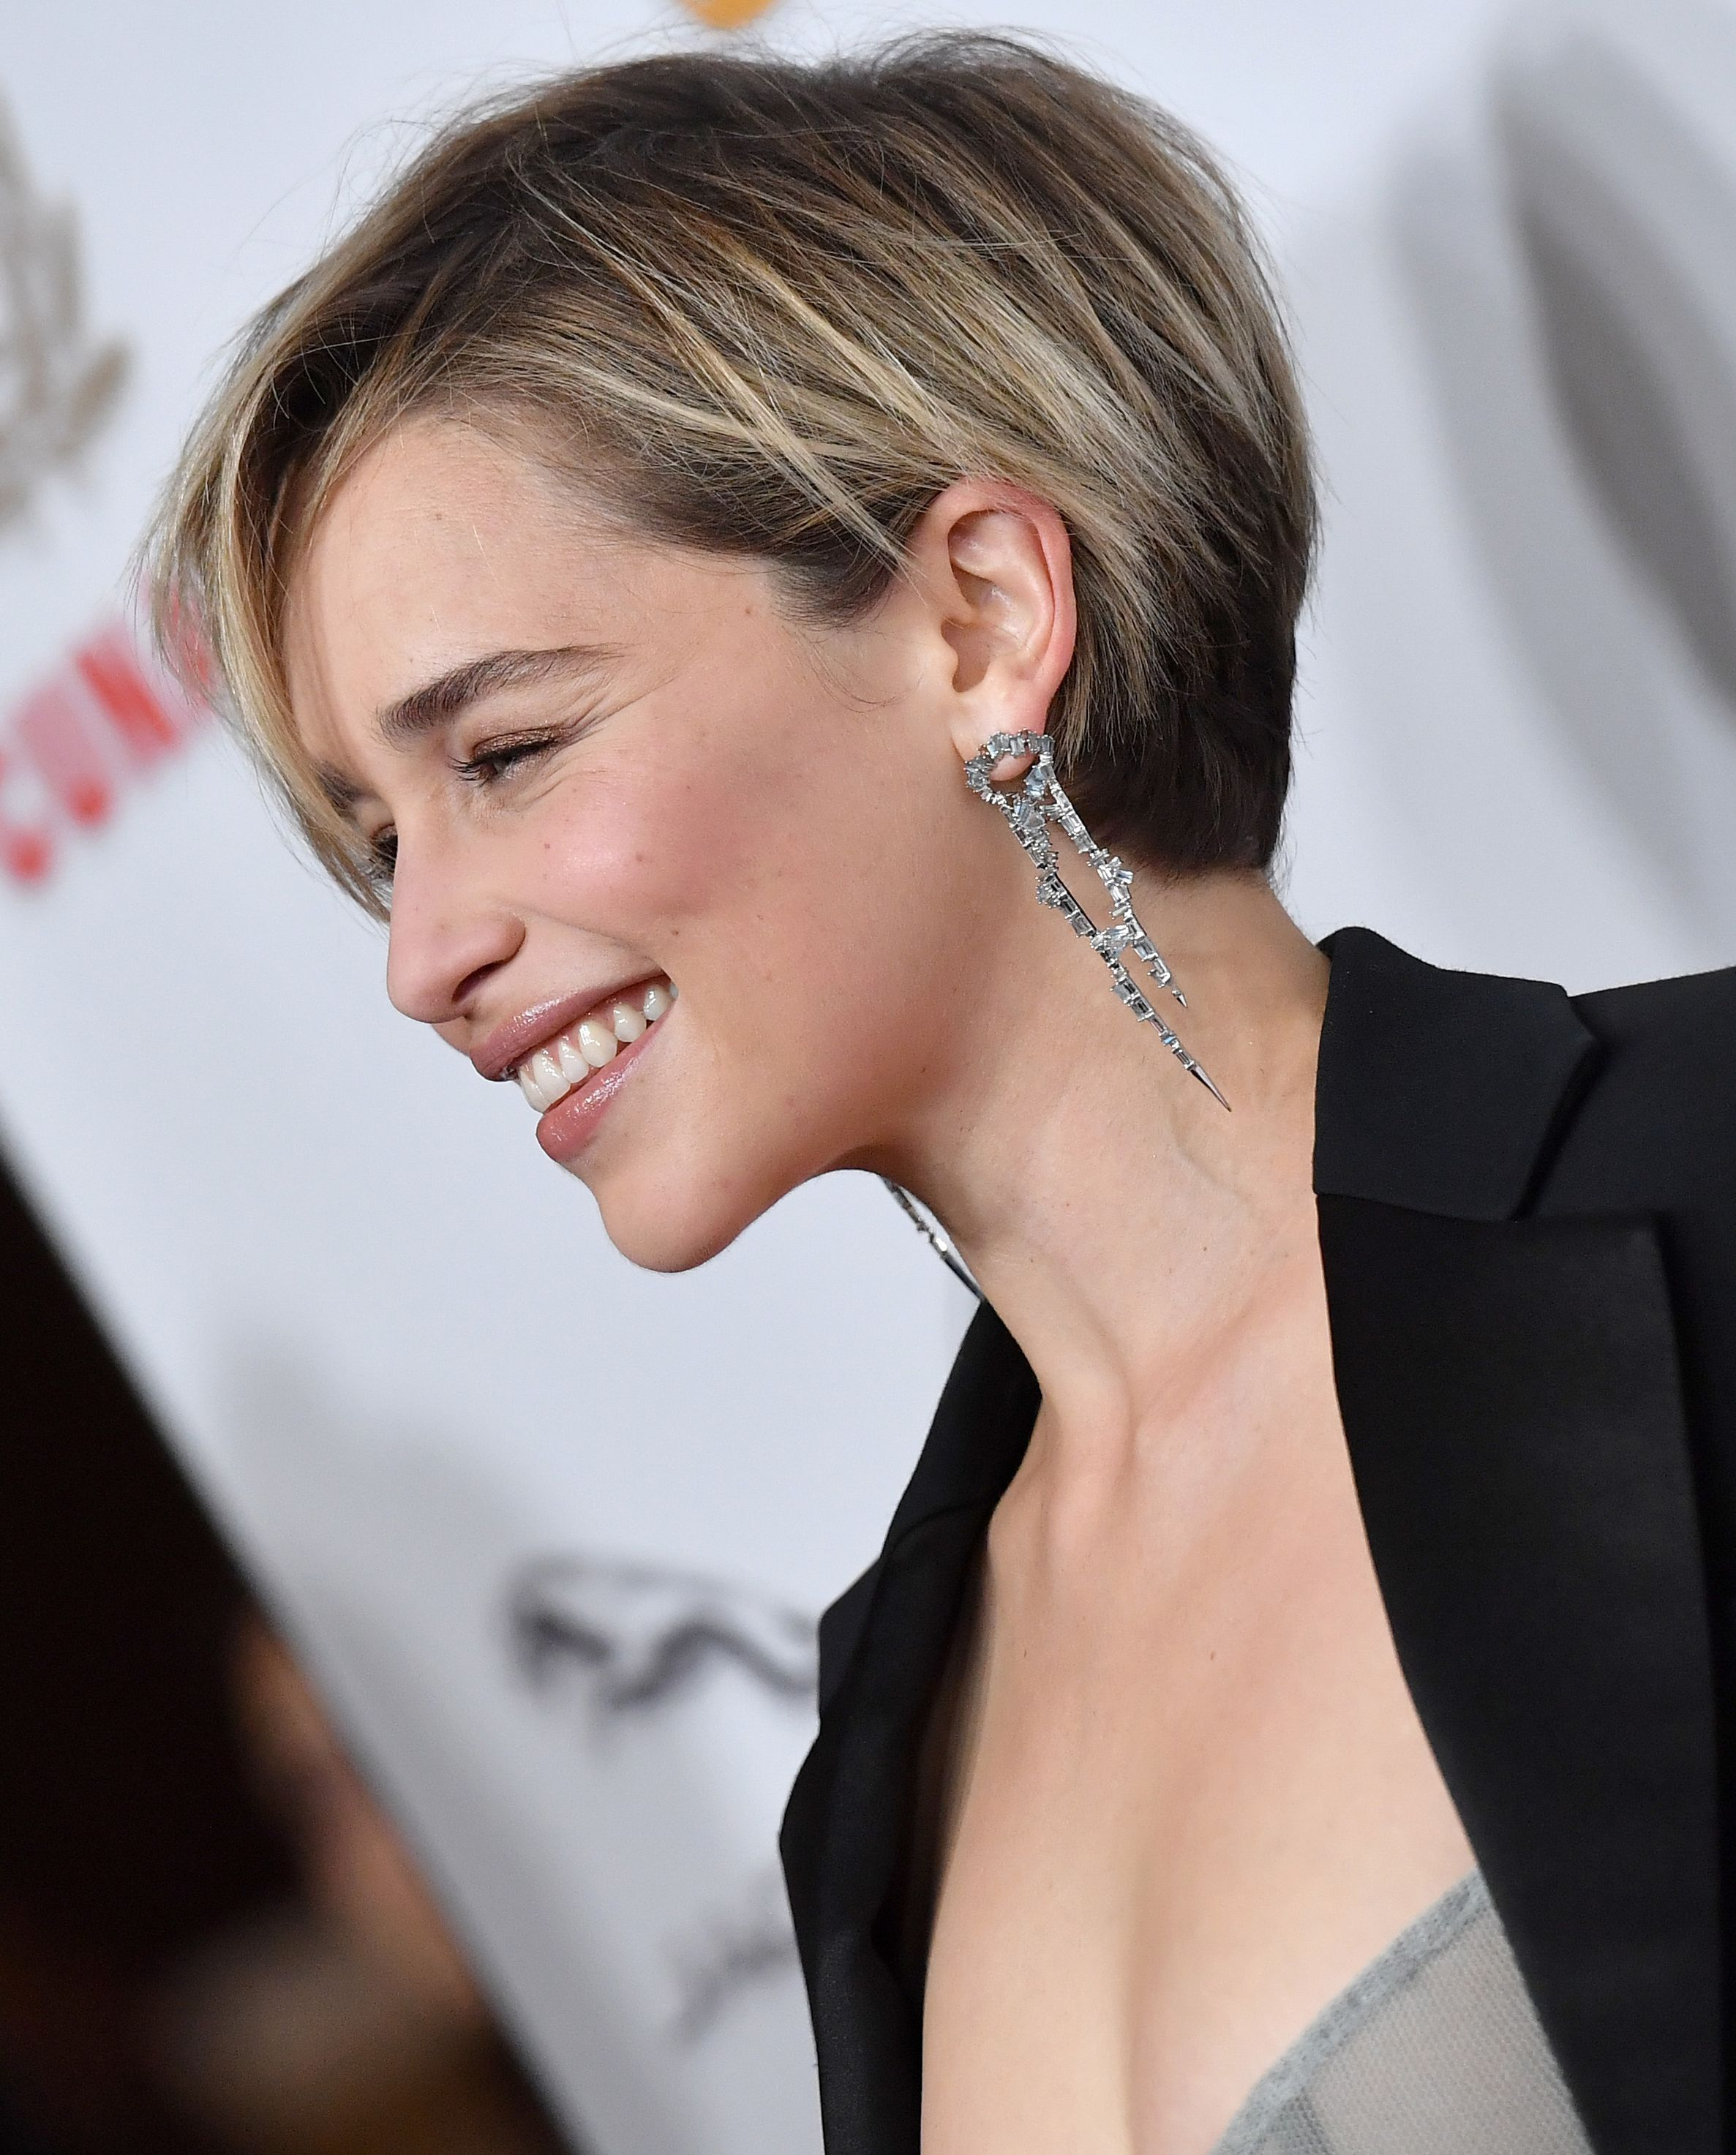 50 Stylish Short Hairstyles and Cuts to Add to You